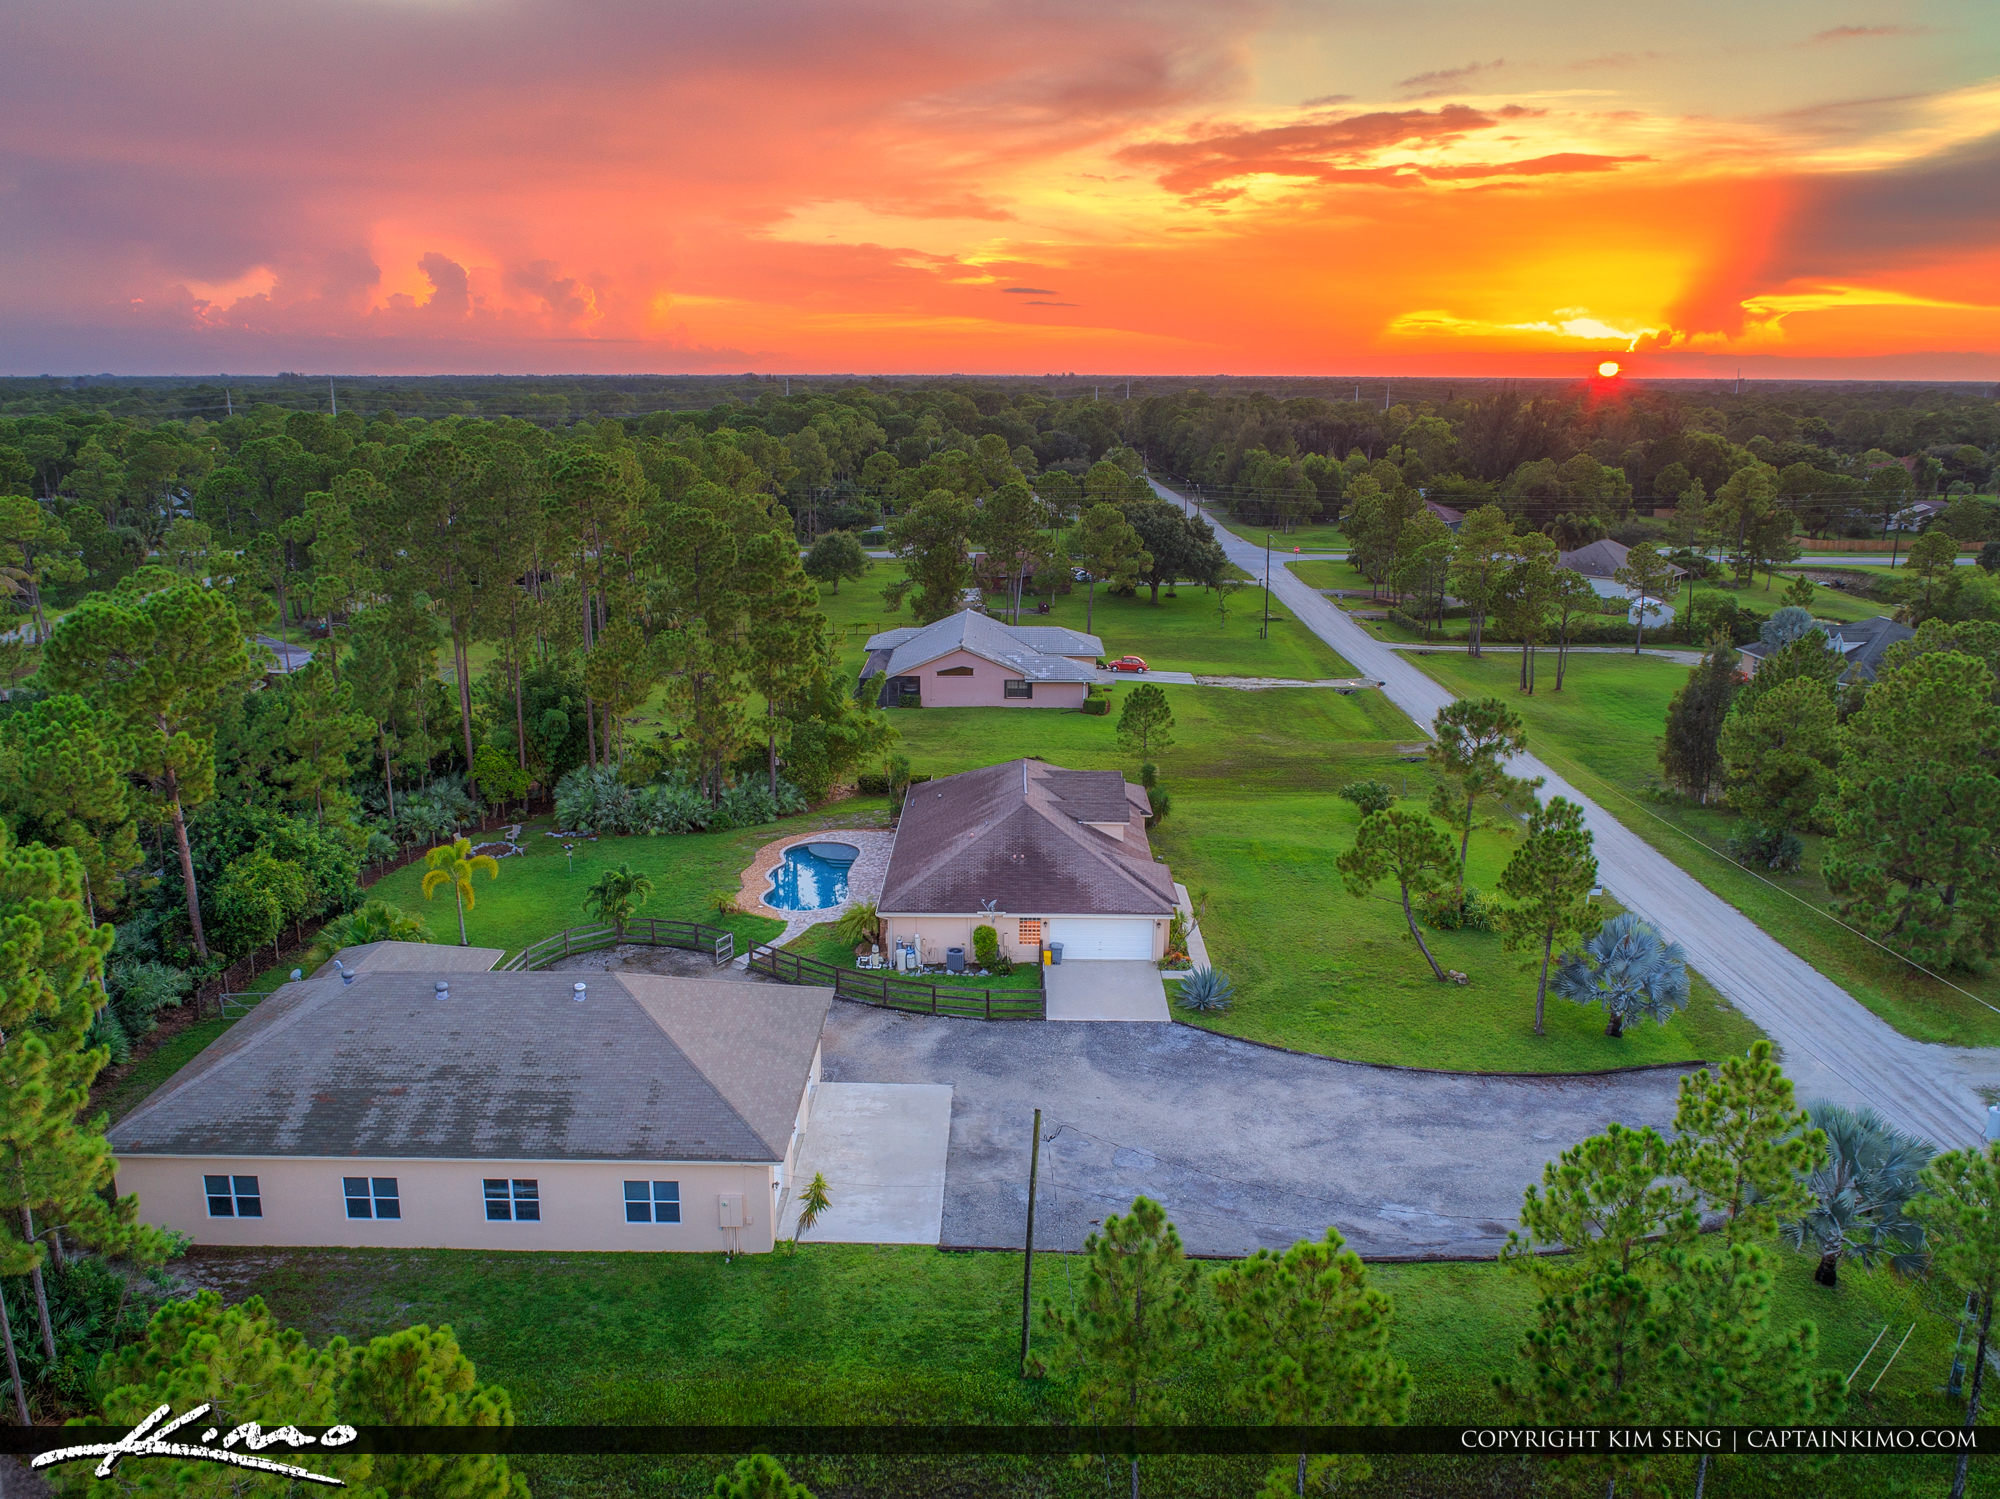 Loxahatchee Florida Sunset Over Real Estate Home Aerial Photo